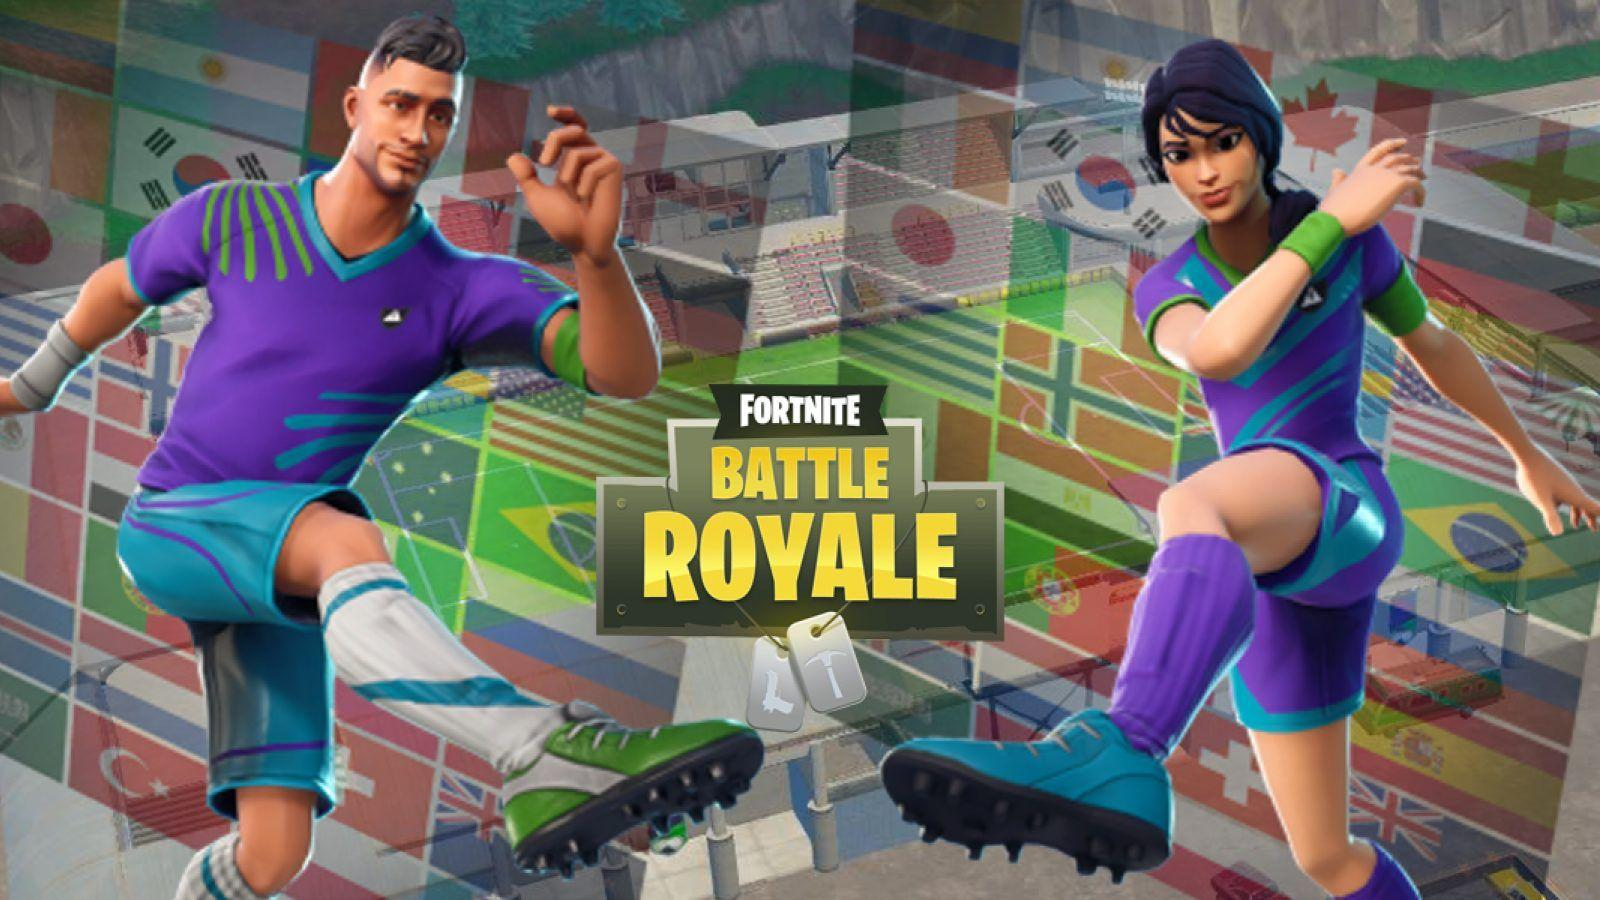 Fortnite Soccer Skins Wallpapers Wallpaper Cave